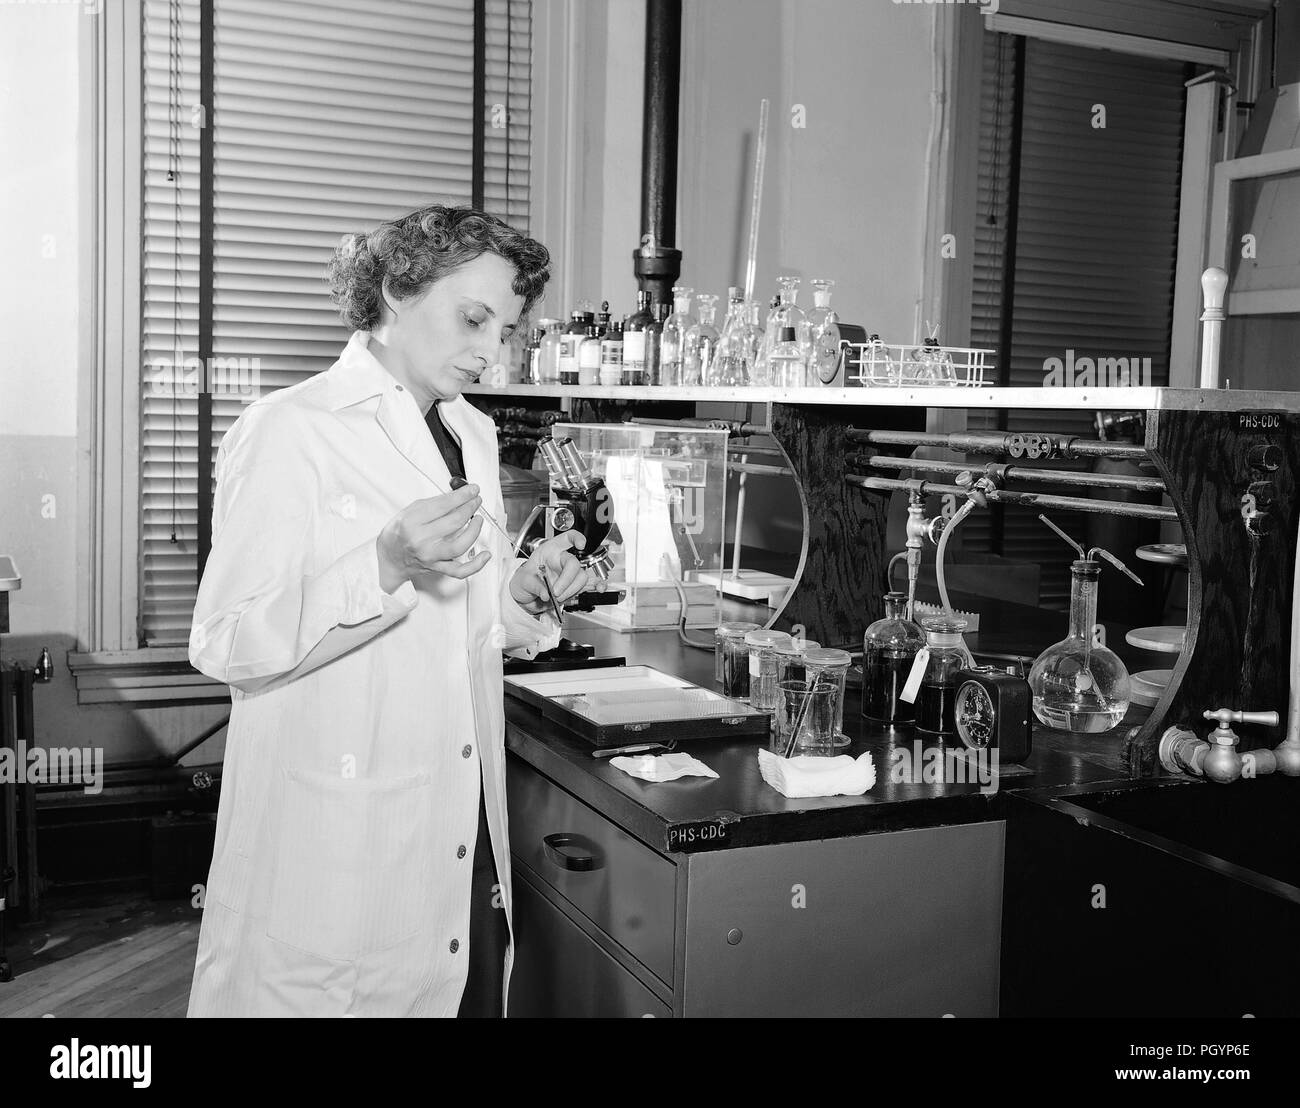 Black and white photograph of Dr Marguerite Candler, wearing a white coat while performing an experimental analysis in the Centers for Disease Control's experimental hematology laboratory, with various scientific apparatus visible in the background, image courtesy CDC, 1955. () - Stock Image